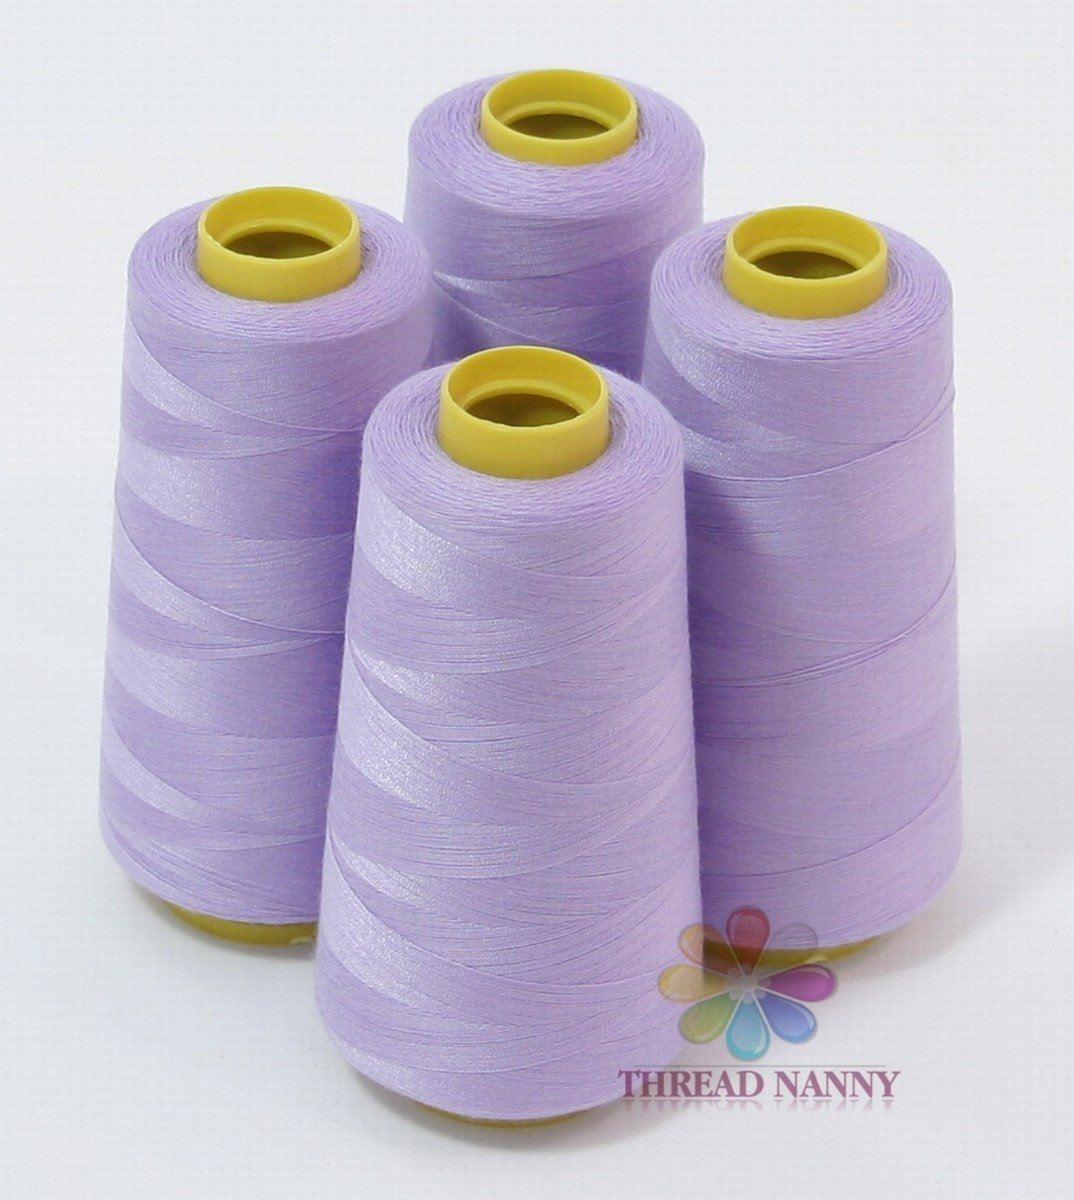 4 Xtra Large Cones of Polyester Sewing Quilting Serger Thread 3000yards Dark Red